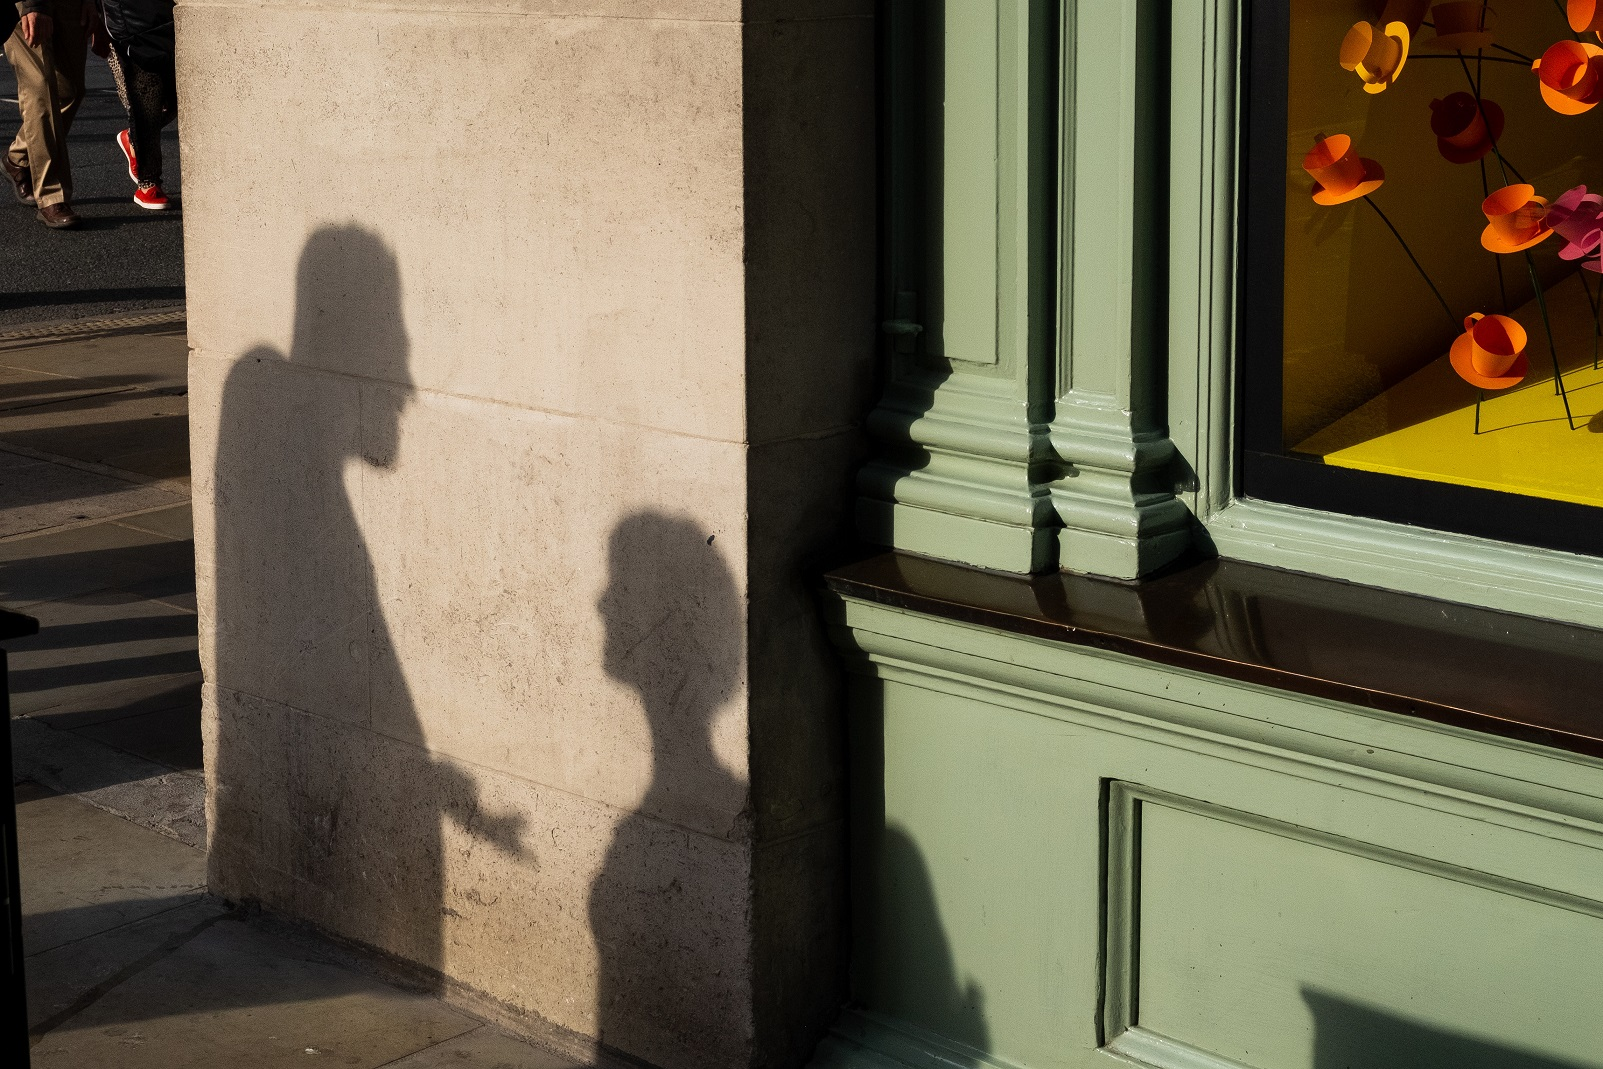 Shadow on side of building of man and woman having an unpleasant conversation.